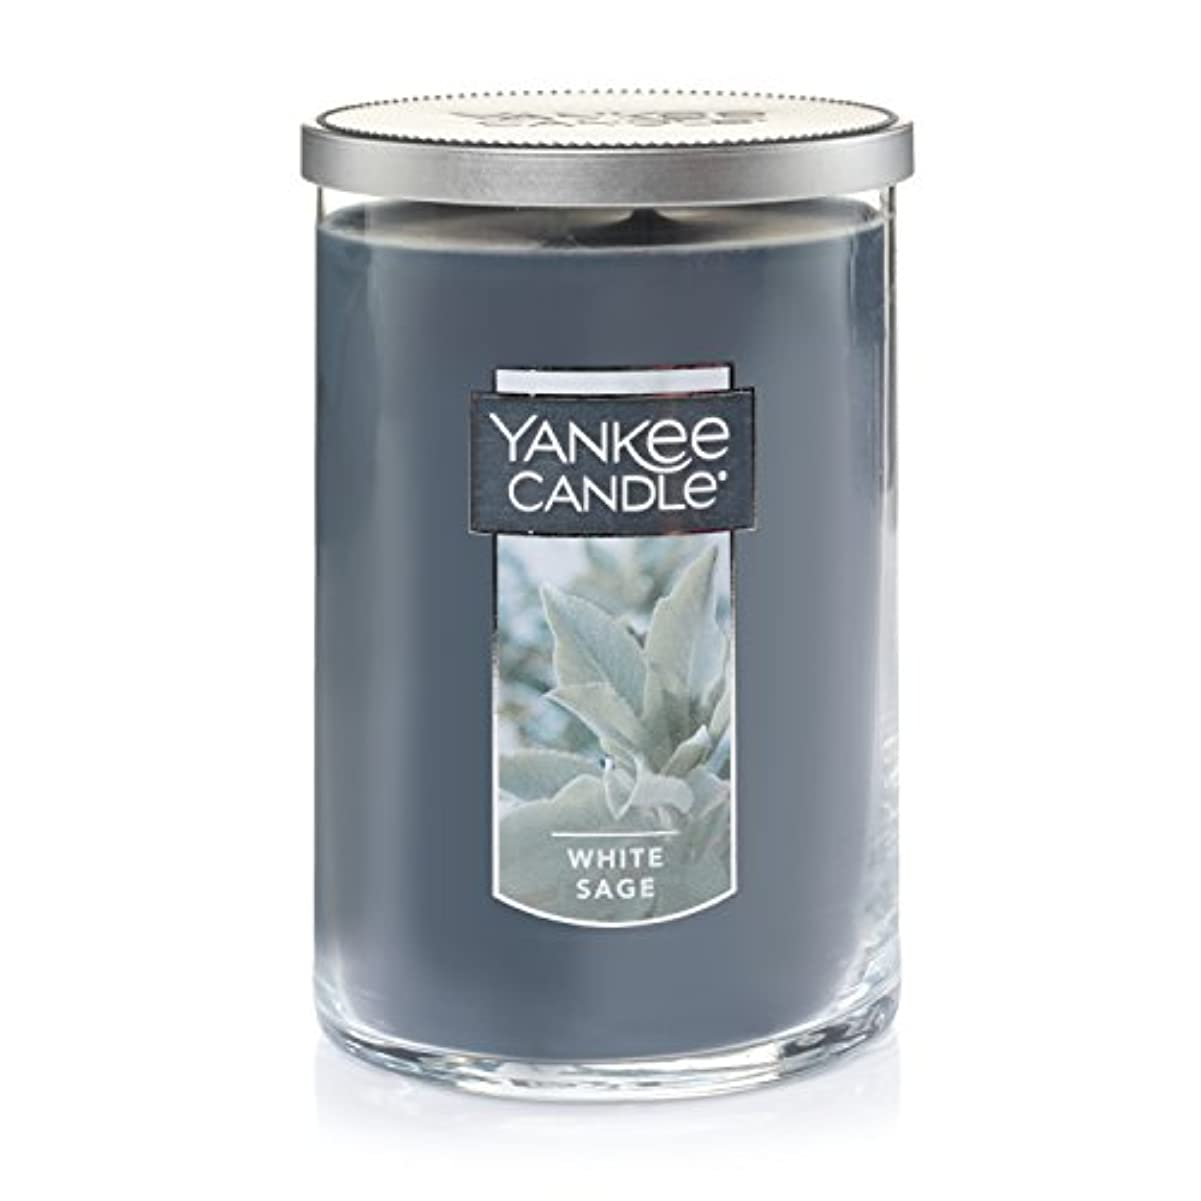 Yankee Candleホワイトセージ Large 2-Wick Tumbler Candles 1556031-YC